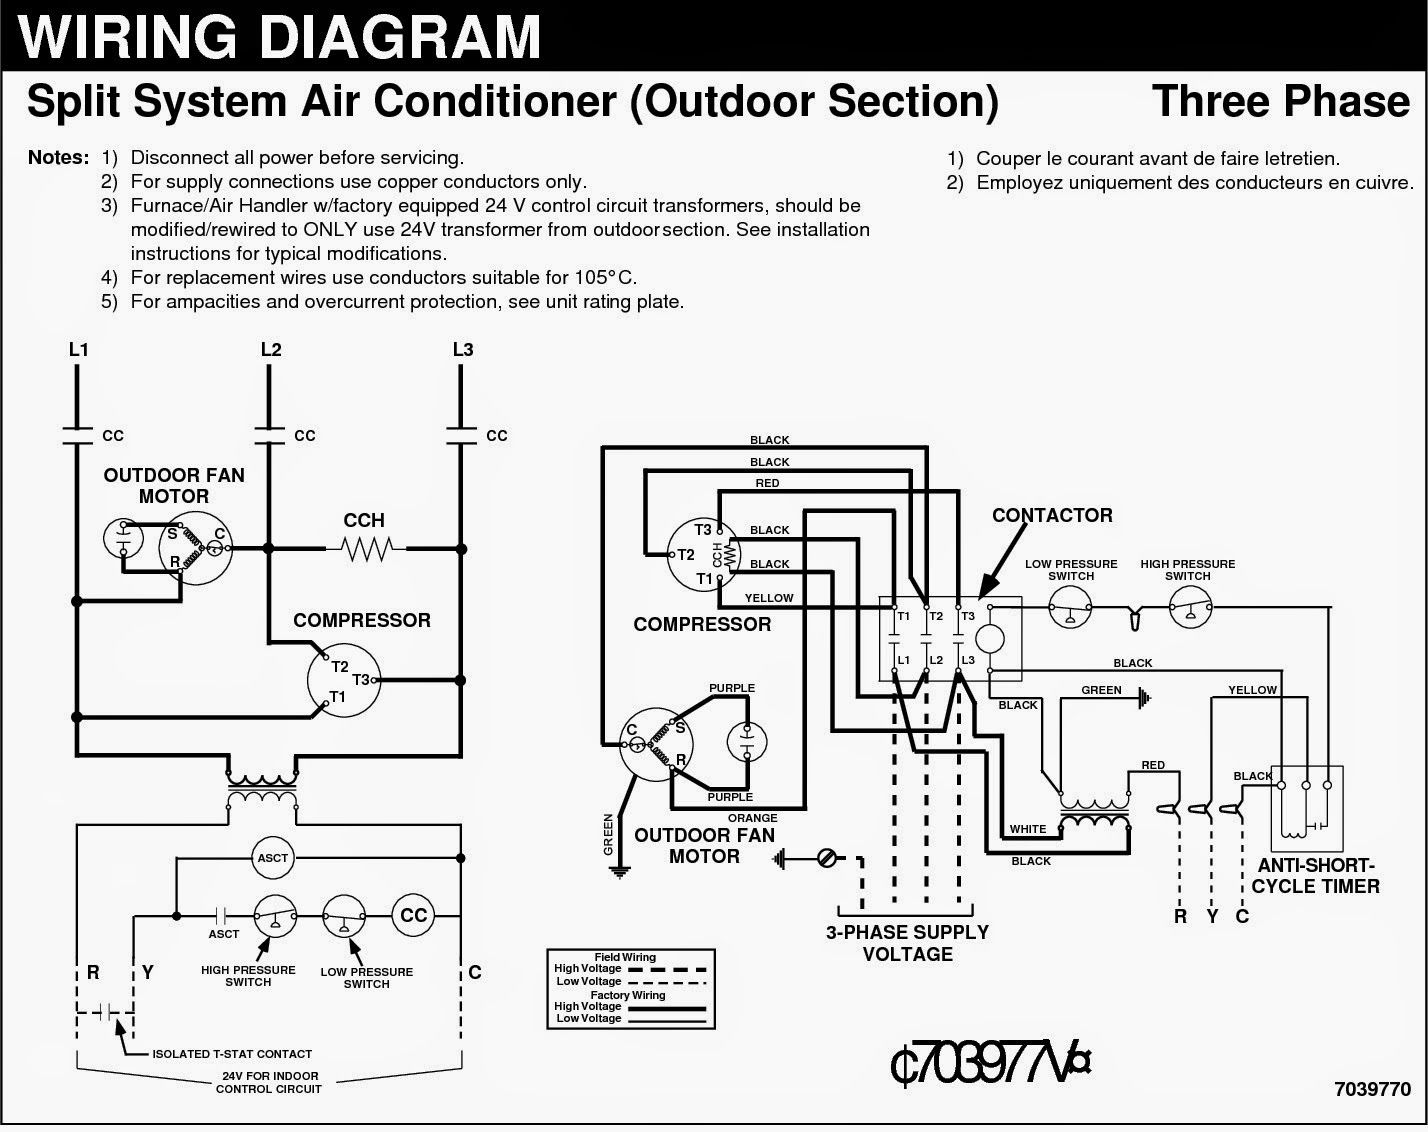 3 Phase Wiring Diagram For House | Electrical wiring diagram ... on 3 phase schematic diagrams, 3 phase converter diagram, 3 phase transformers diagram, 3 phase generator diagram, 3 phase inverter diagram, 3 phase wire, 3 phase power, 3 phase relay, 3 phase connector diagram, 3 phase cable, 3 phase circuit, 3 phase block diagram, 3 phase motor connection diagram, ceiling fan installation diagram, 3 phase regulator, 3 phase coil diagram, 3 phase electricity diagram, 3 phase plug, 3 phase thermostat diagram, 3 phase electric panel diagrams,